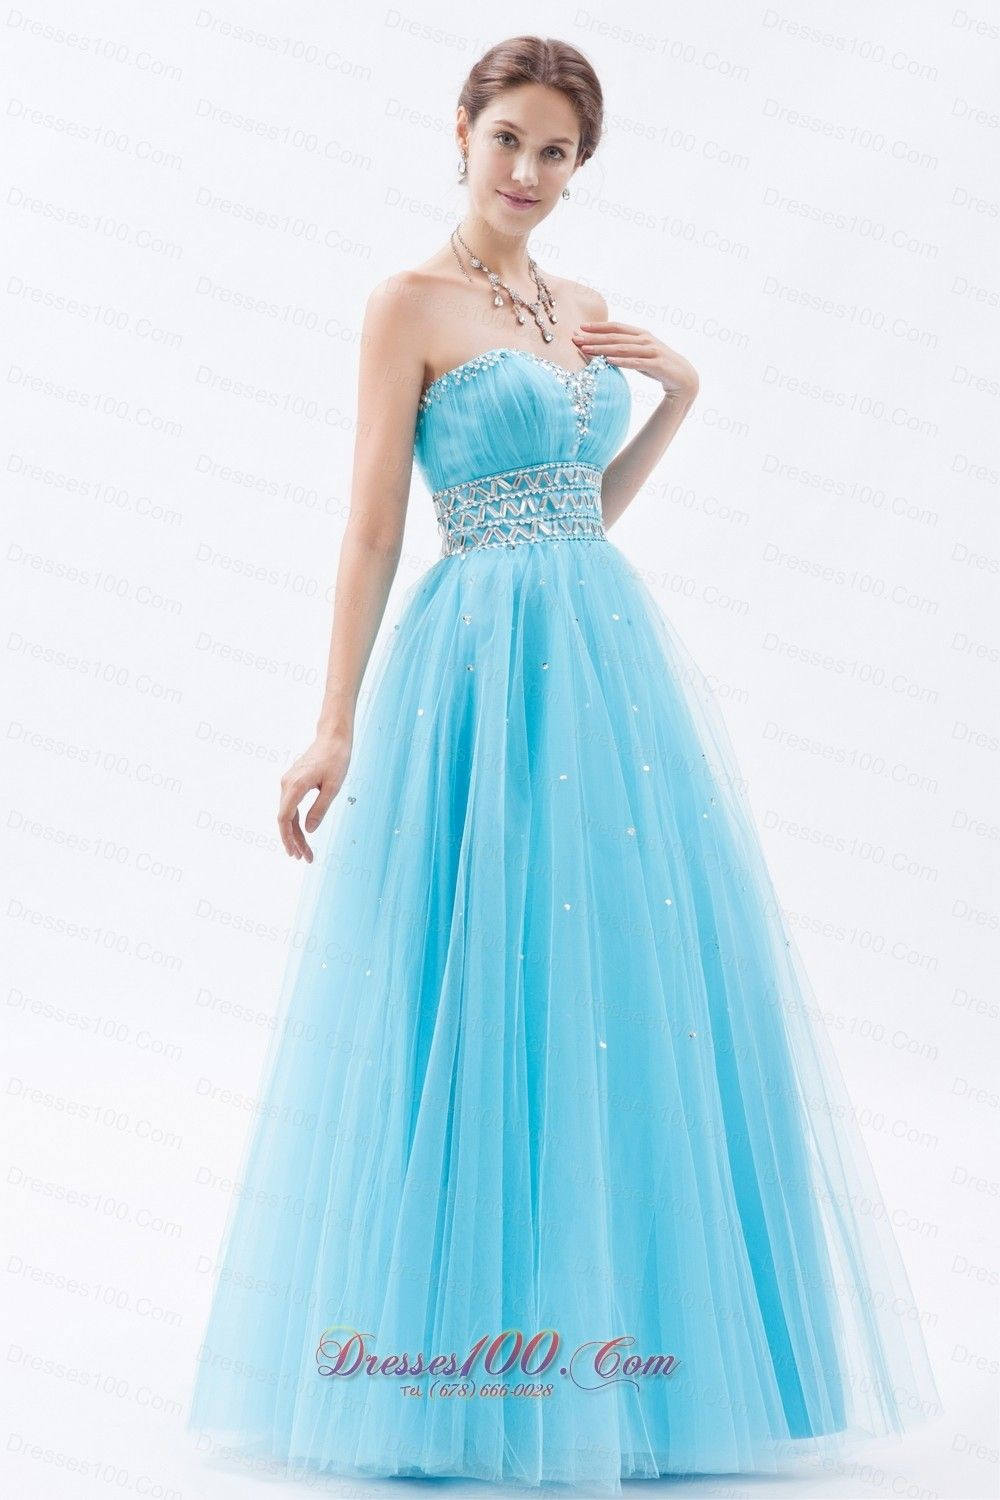 Lovely Prom Dress in Bayfield free shipping prom dress,customize ...